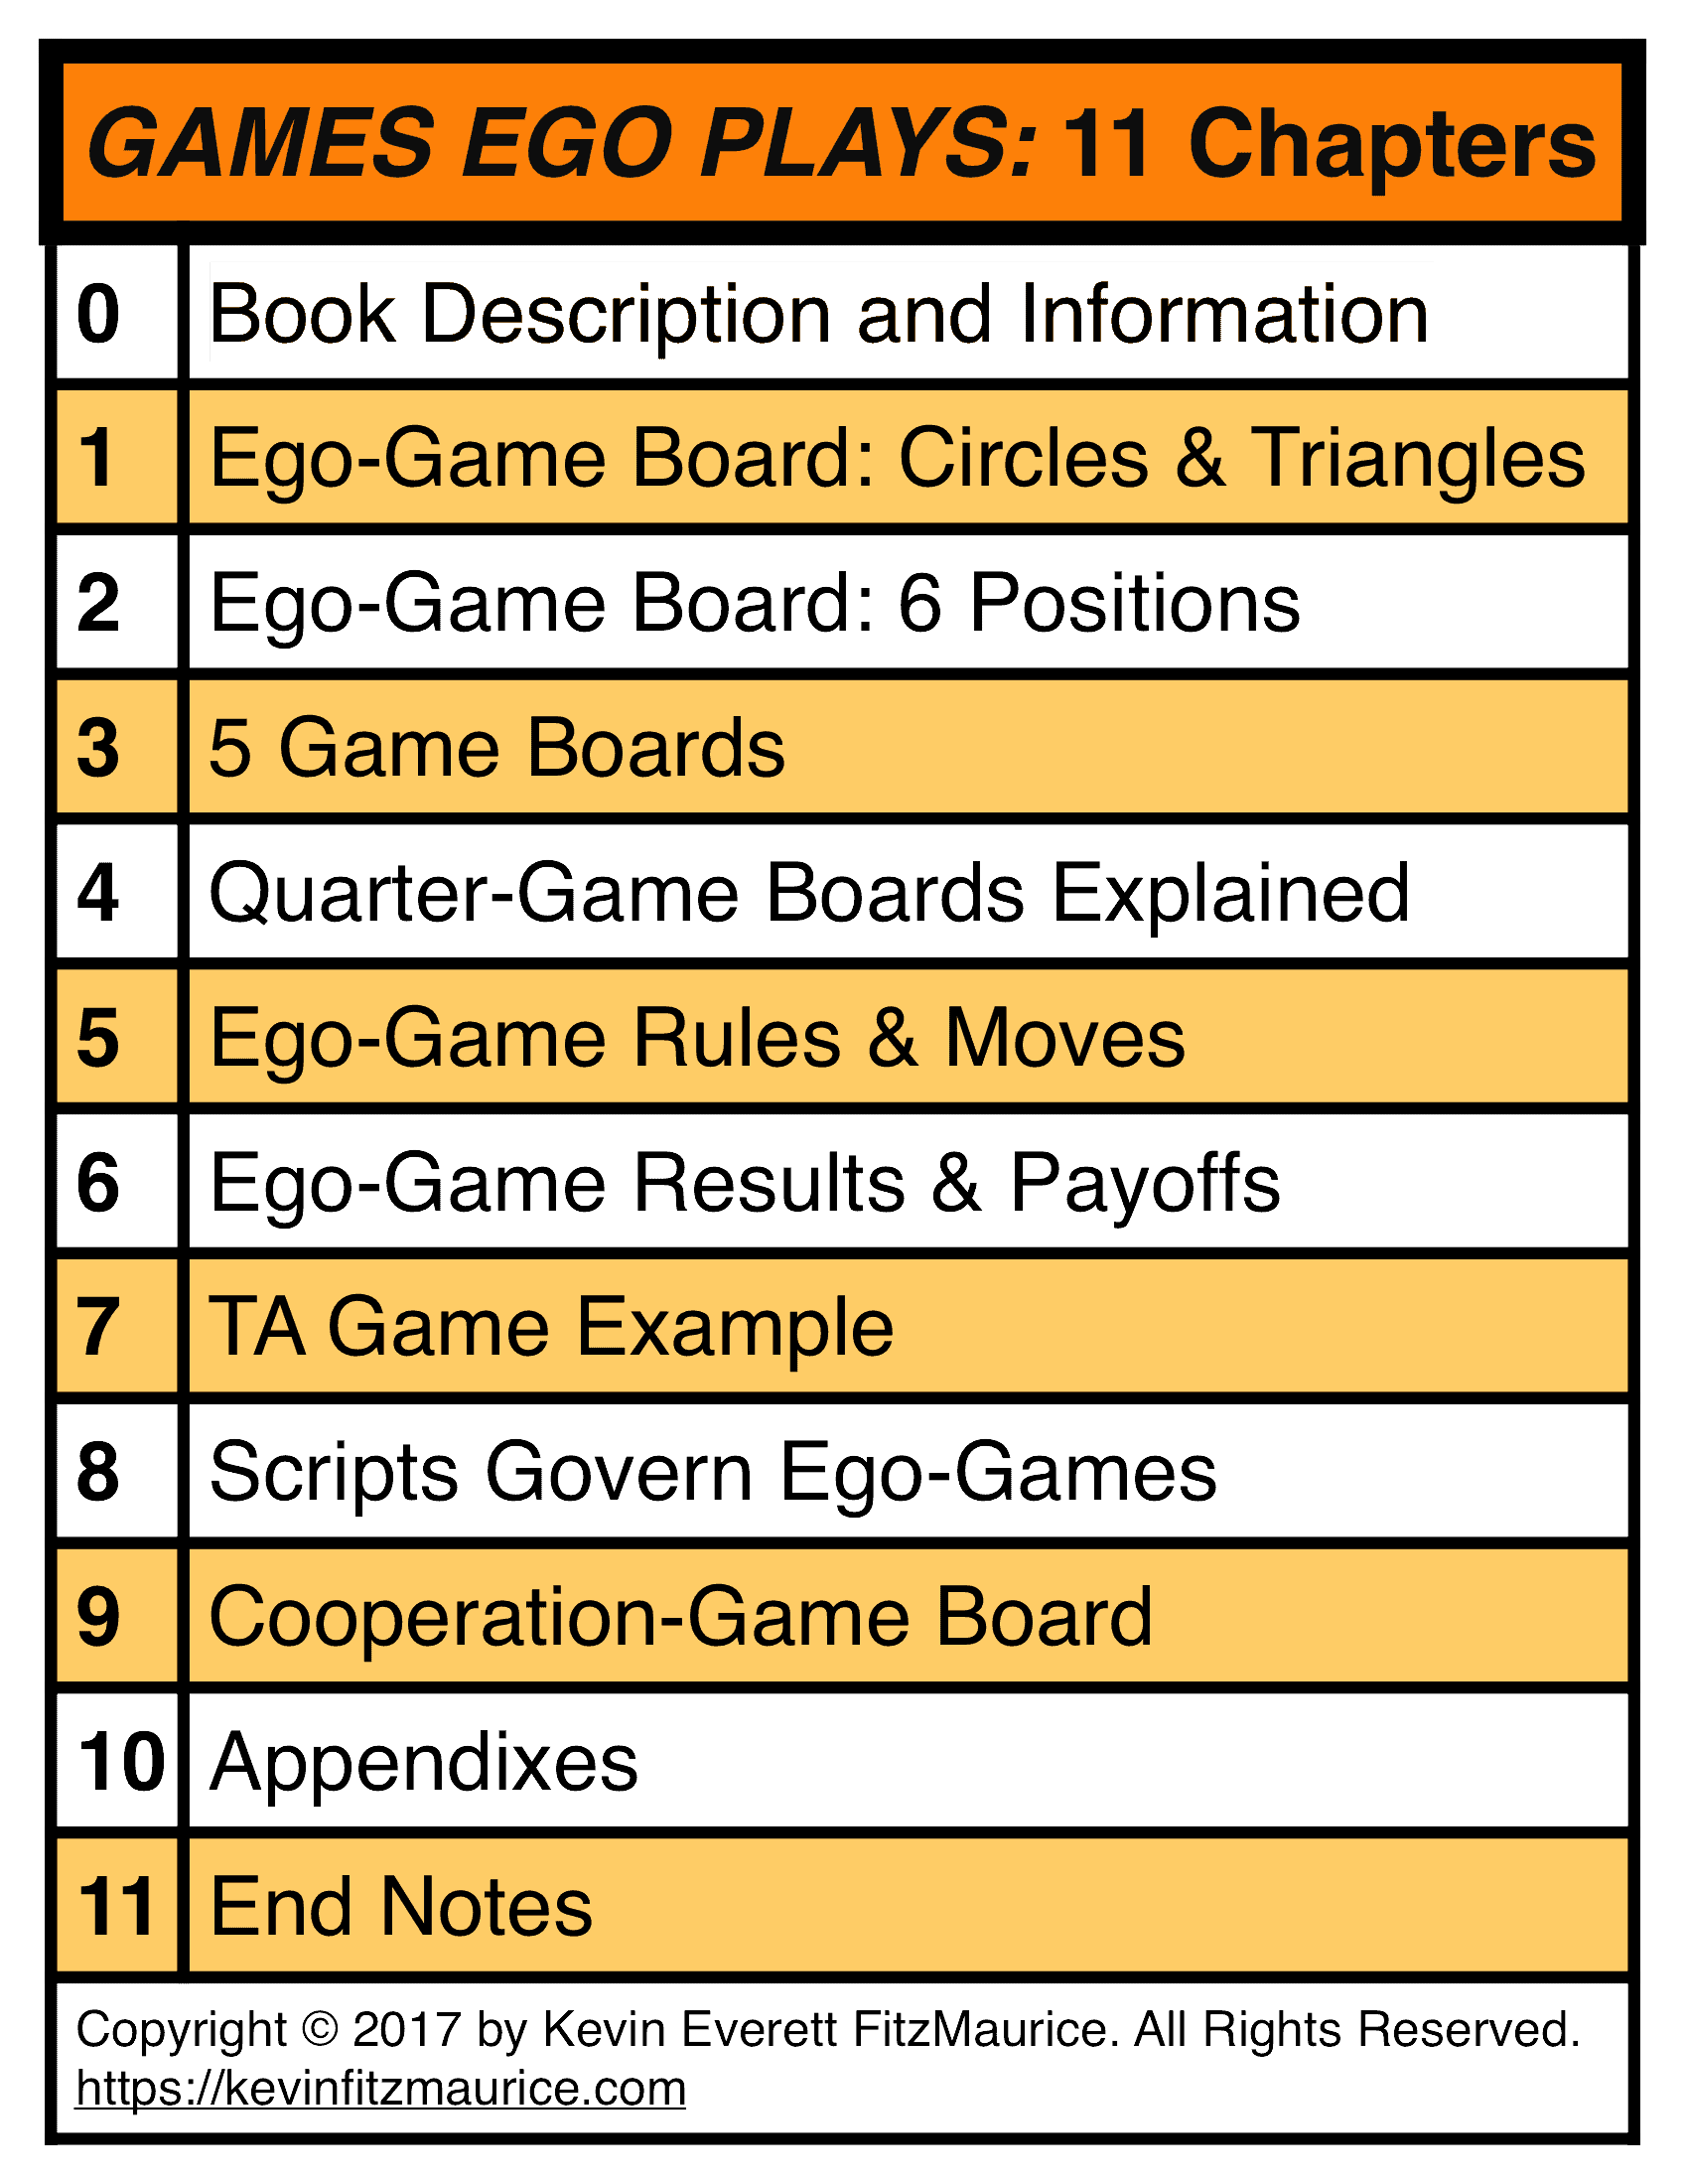 GAMES EGO PLAYS Table of Chapters